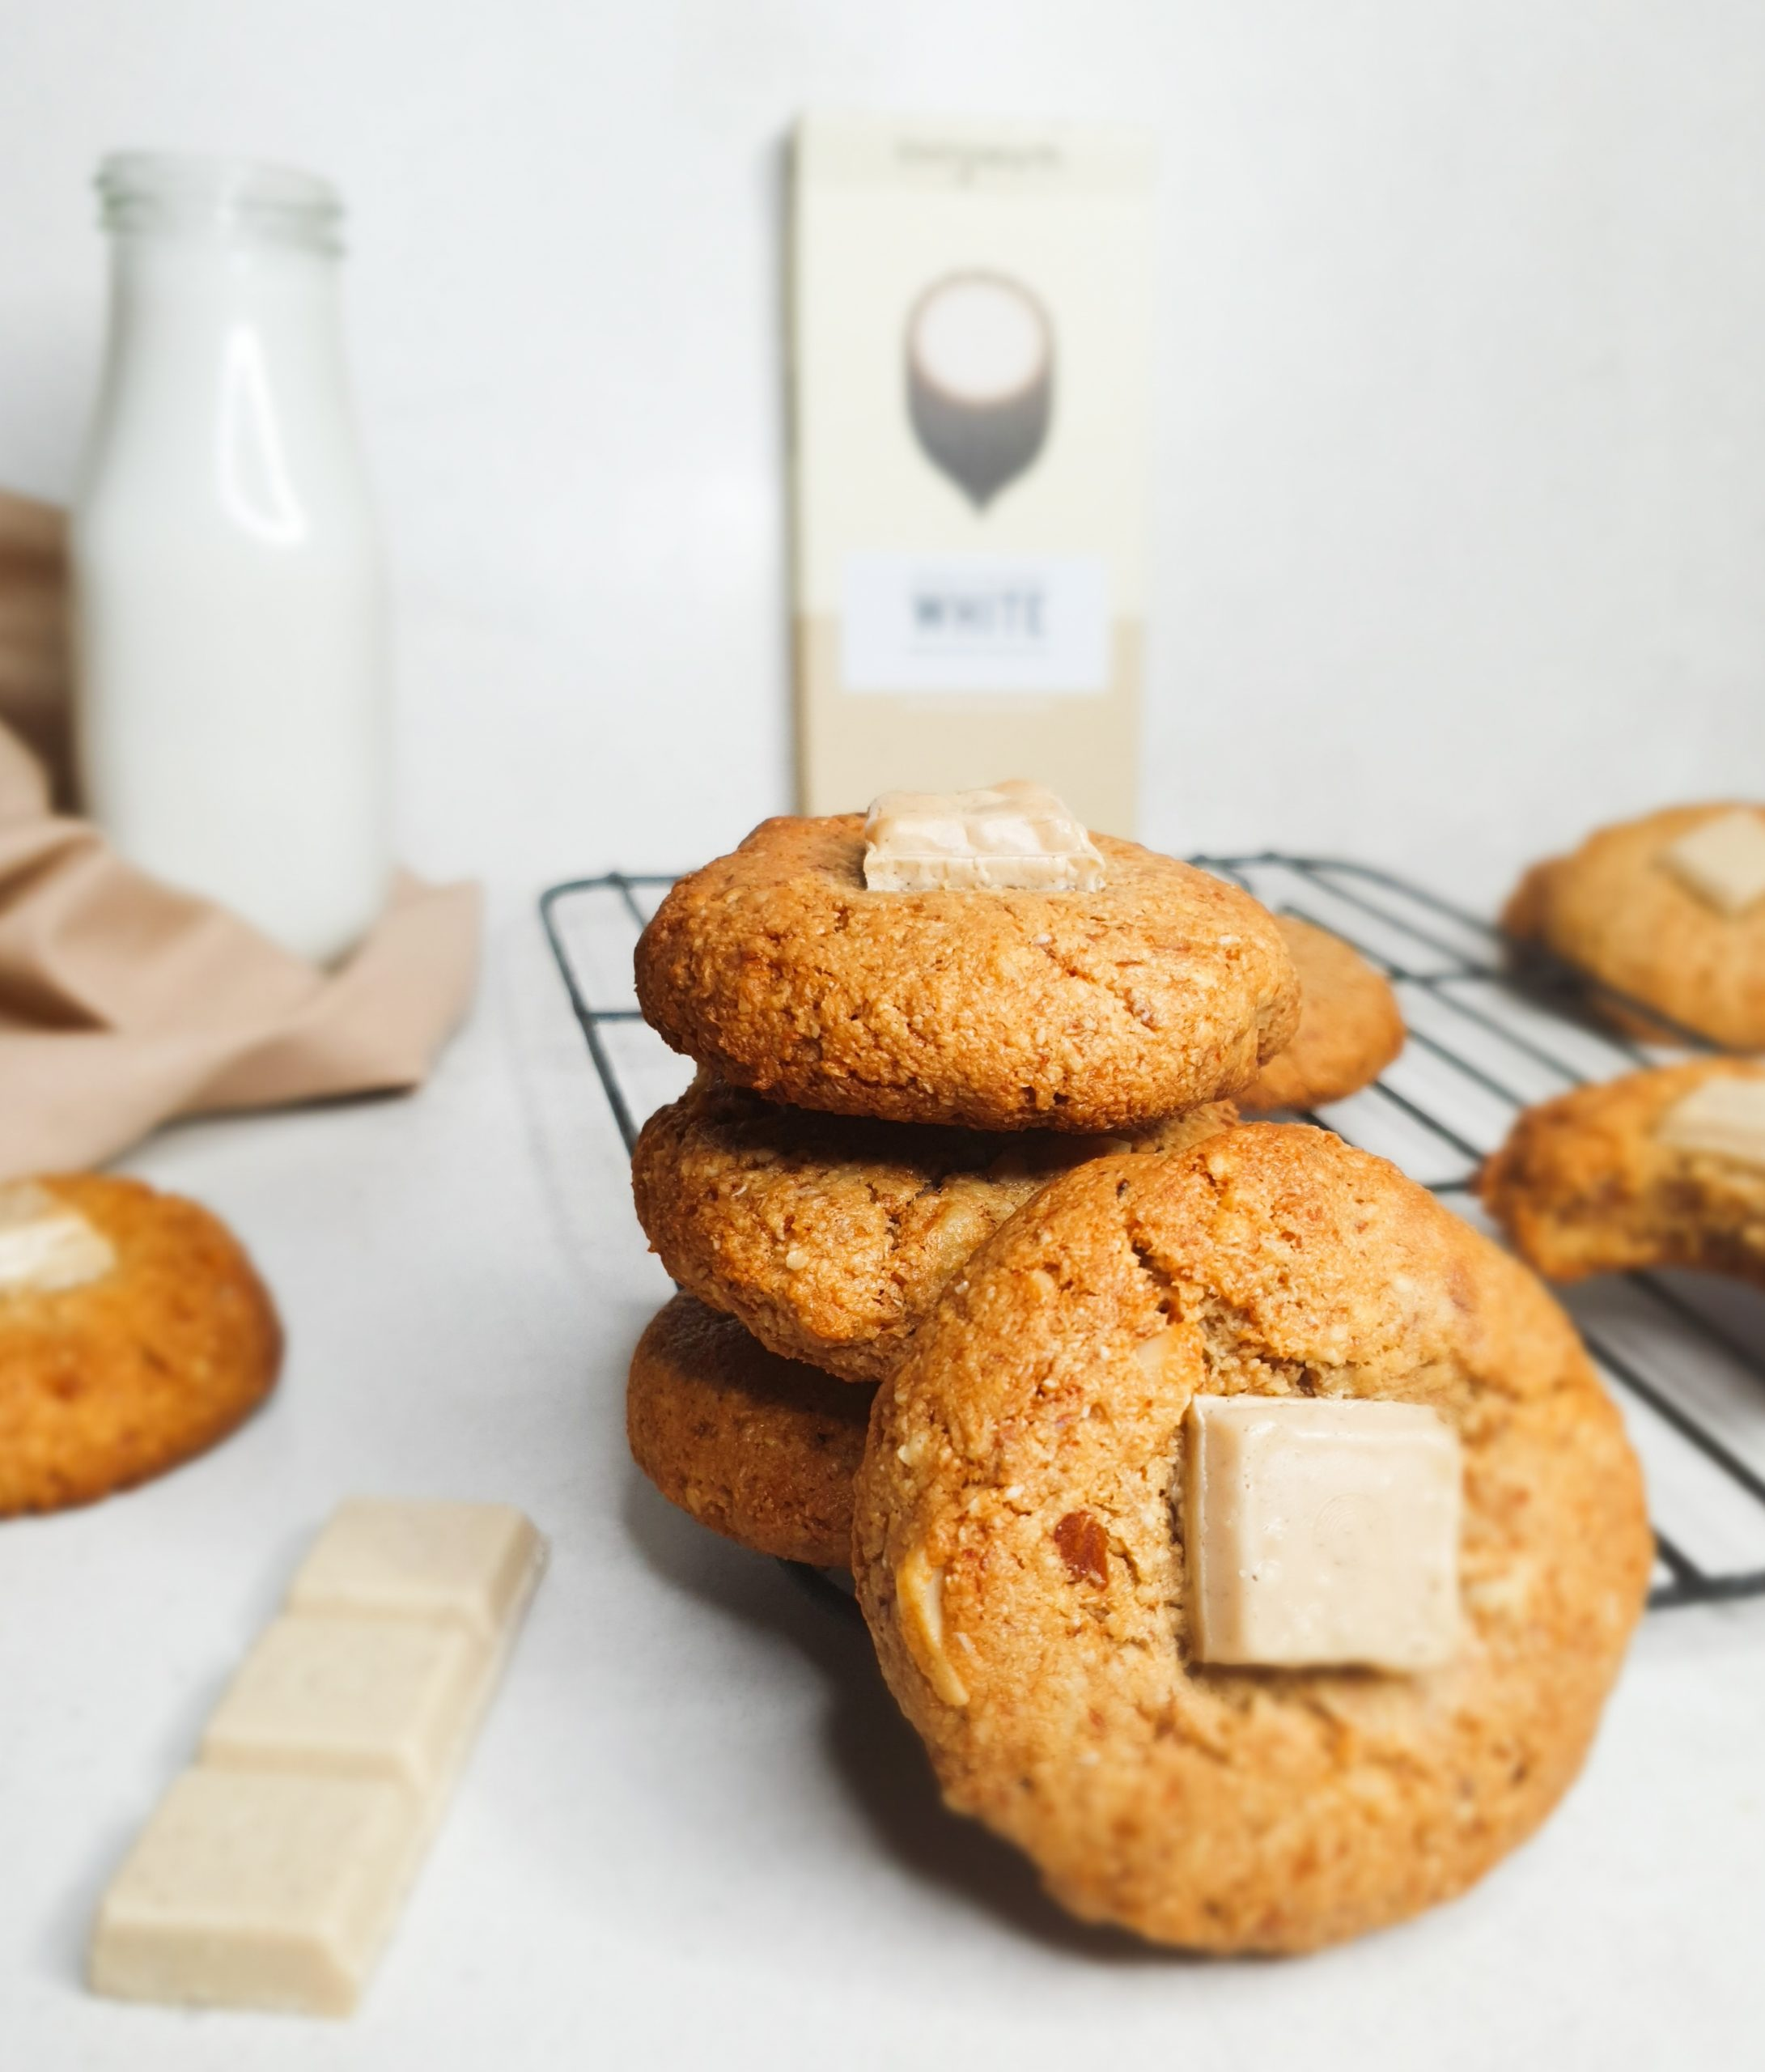 A Picture of Cookies stacked on a colling rack, with a bottle of milk and a block of chocolate in the background